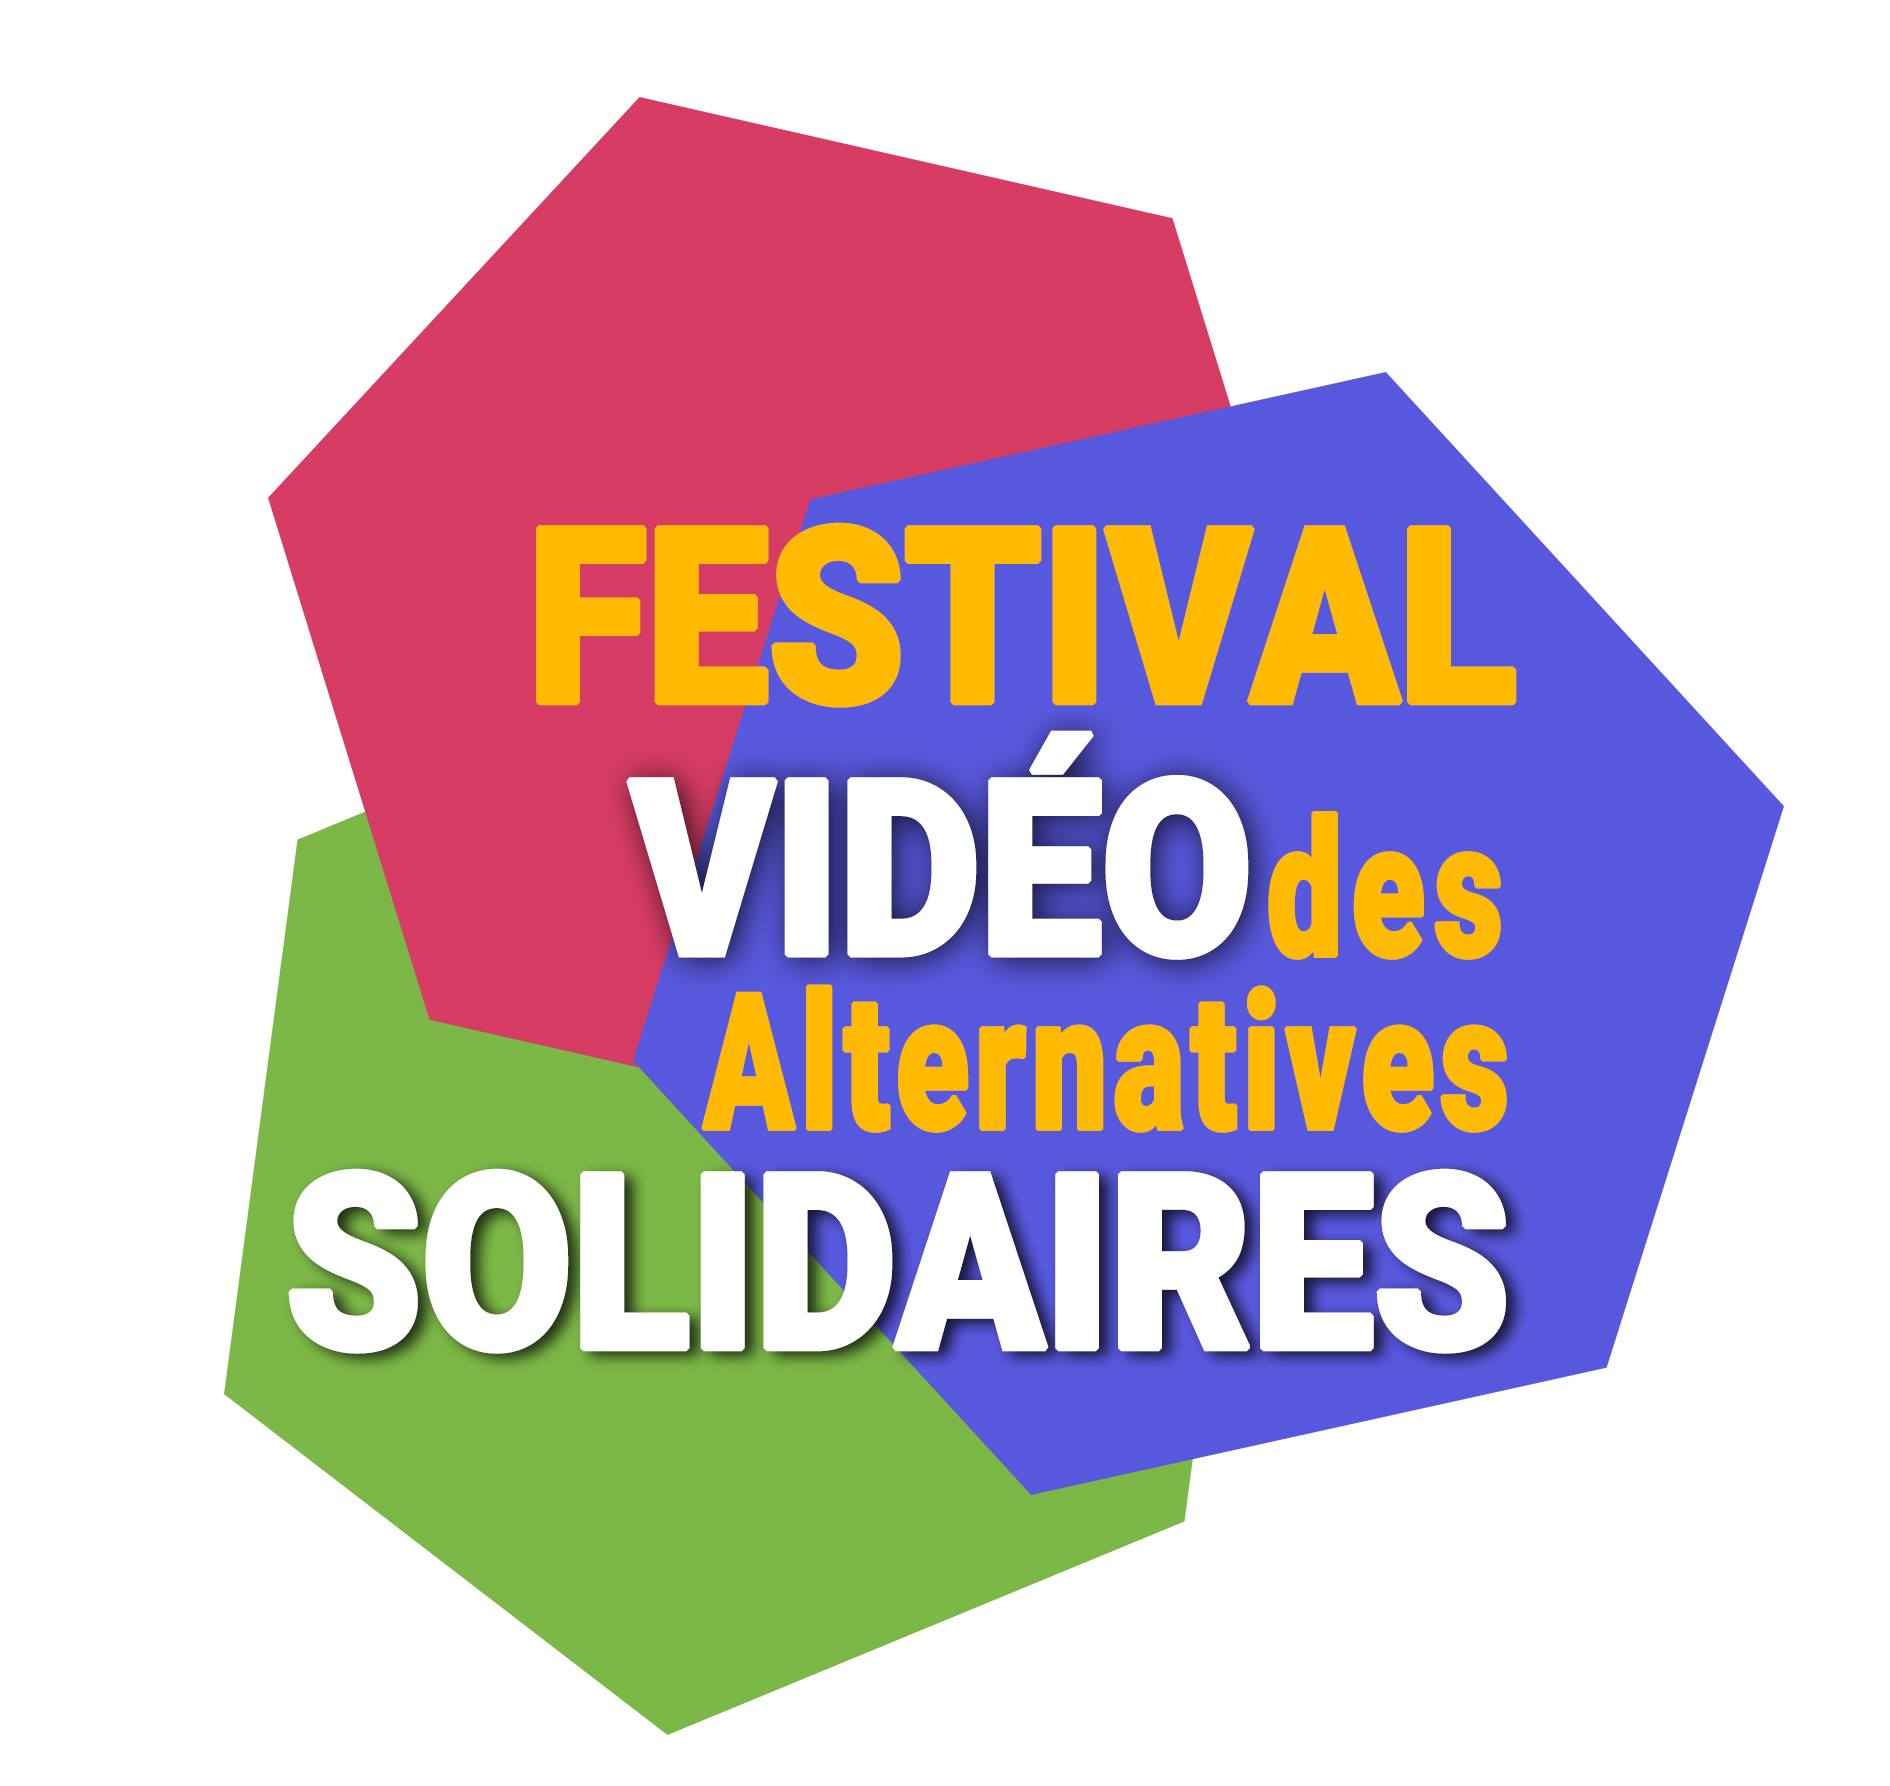 Le Festival vidéo des alternatives solidaires lance son appel à film